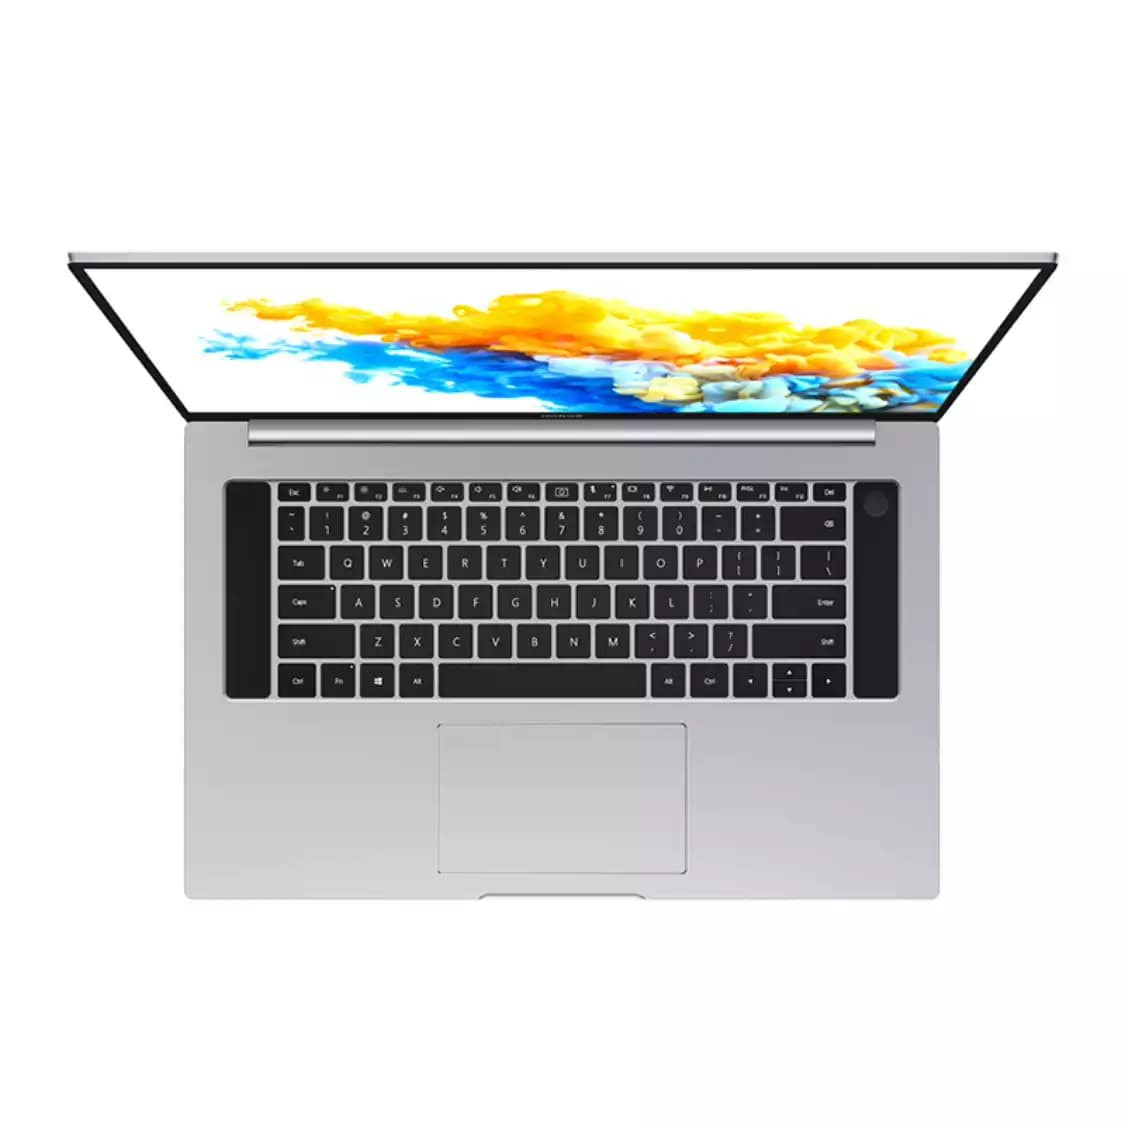 Honor MagicBook Pro 2020 rendering